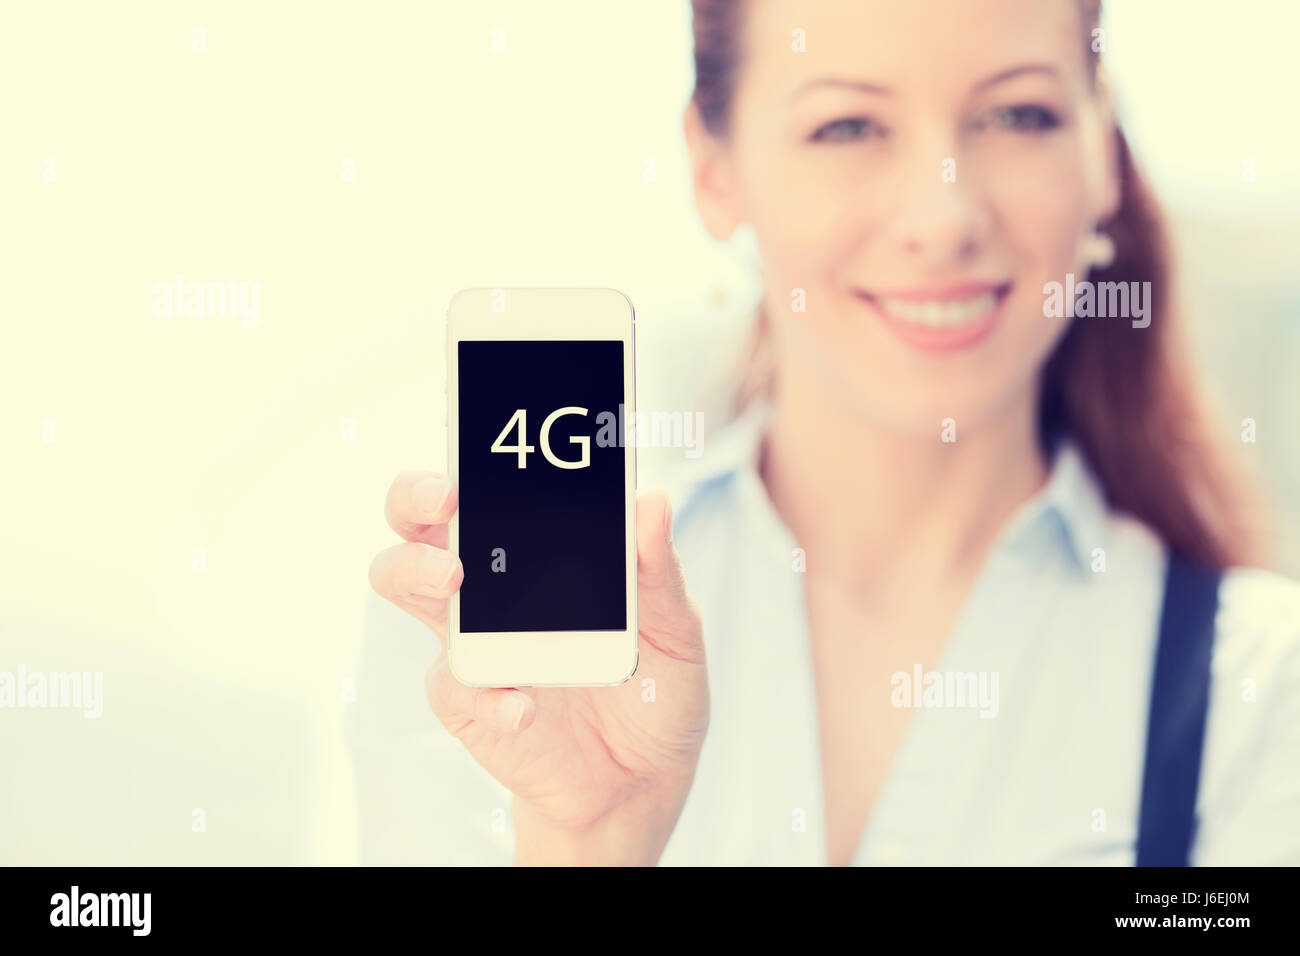 Smiling female holding mobile smart phone with 4G sign on screen isolated outside city background focus on smartphone. - Stock Image